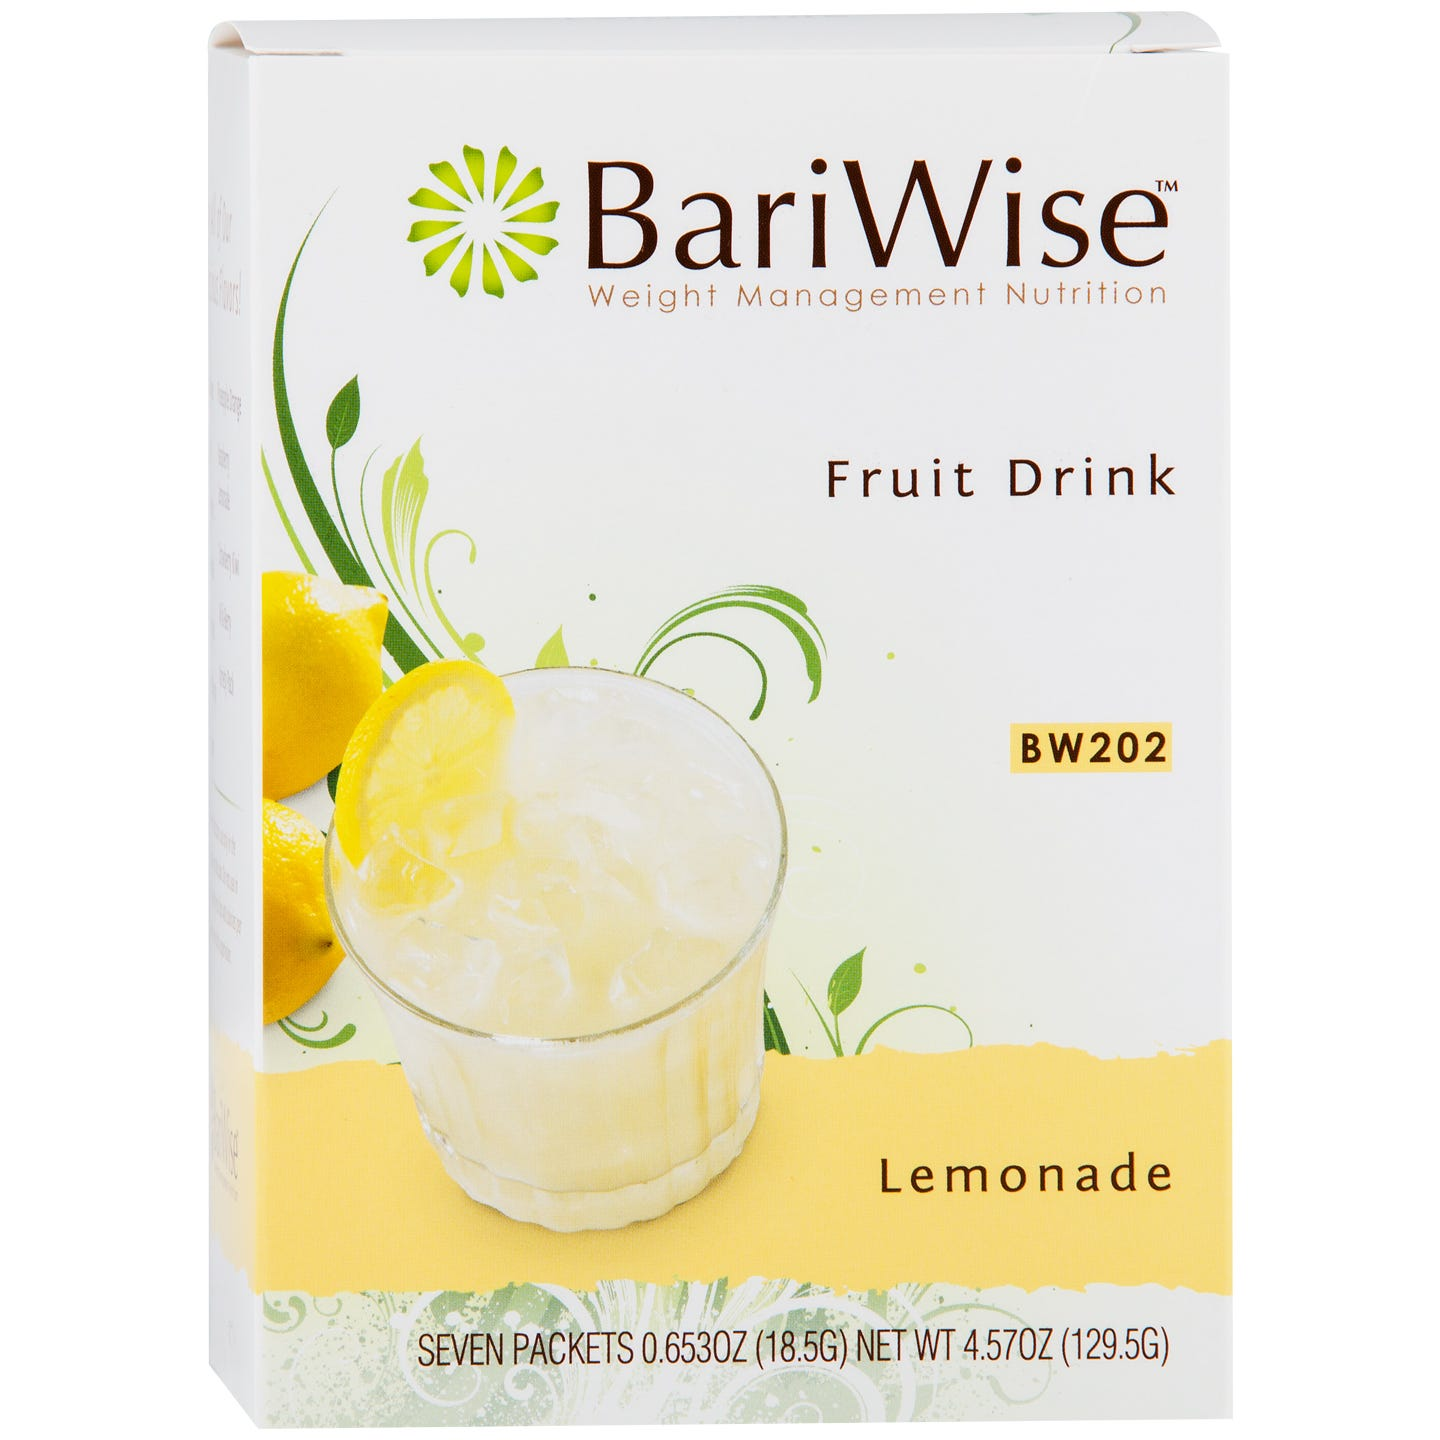 Protein Diet Fruit Drink Lemonade (7 ct) - BariWise - Rapid Diet Weight Loss Products Shop